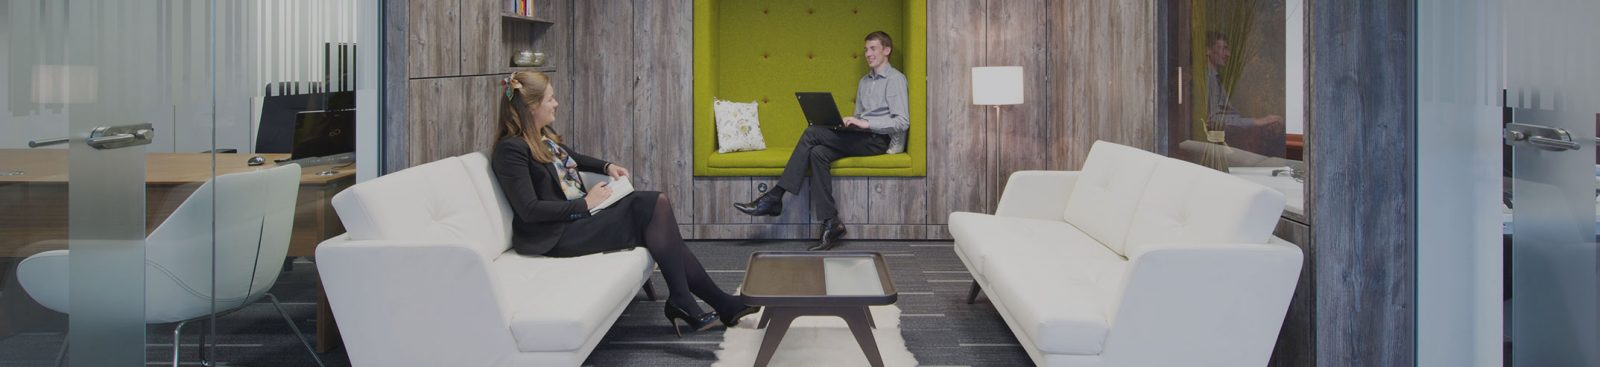 Why Office Design matters image